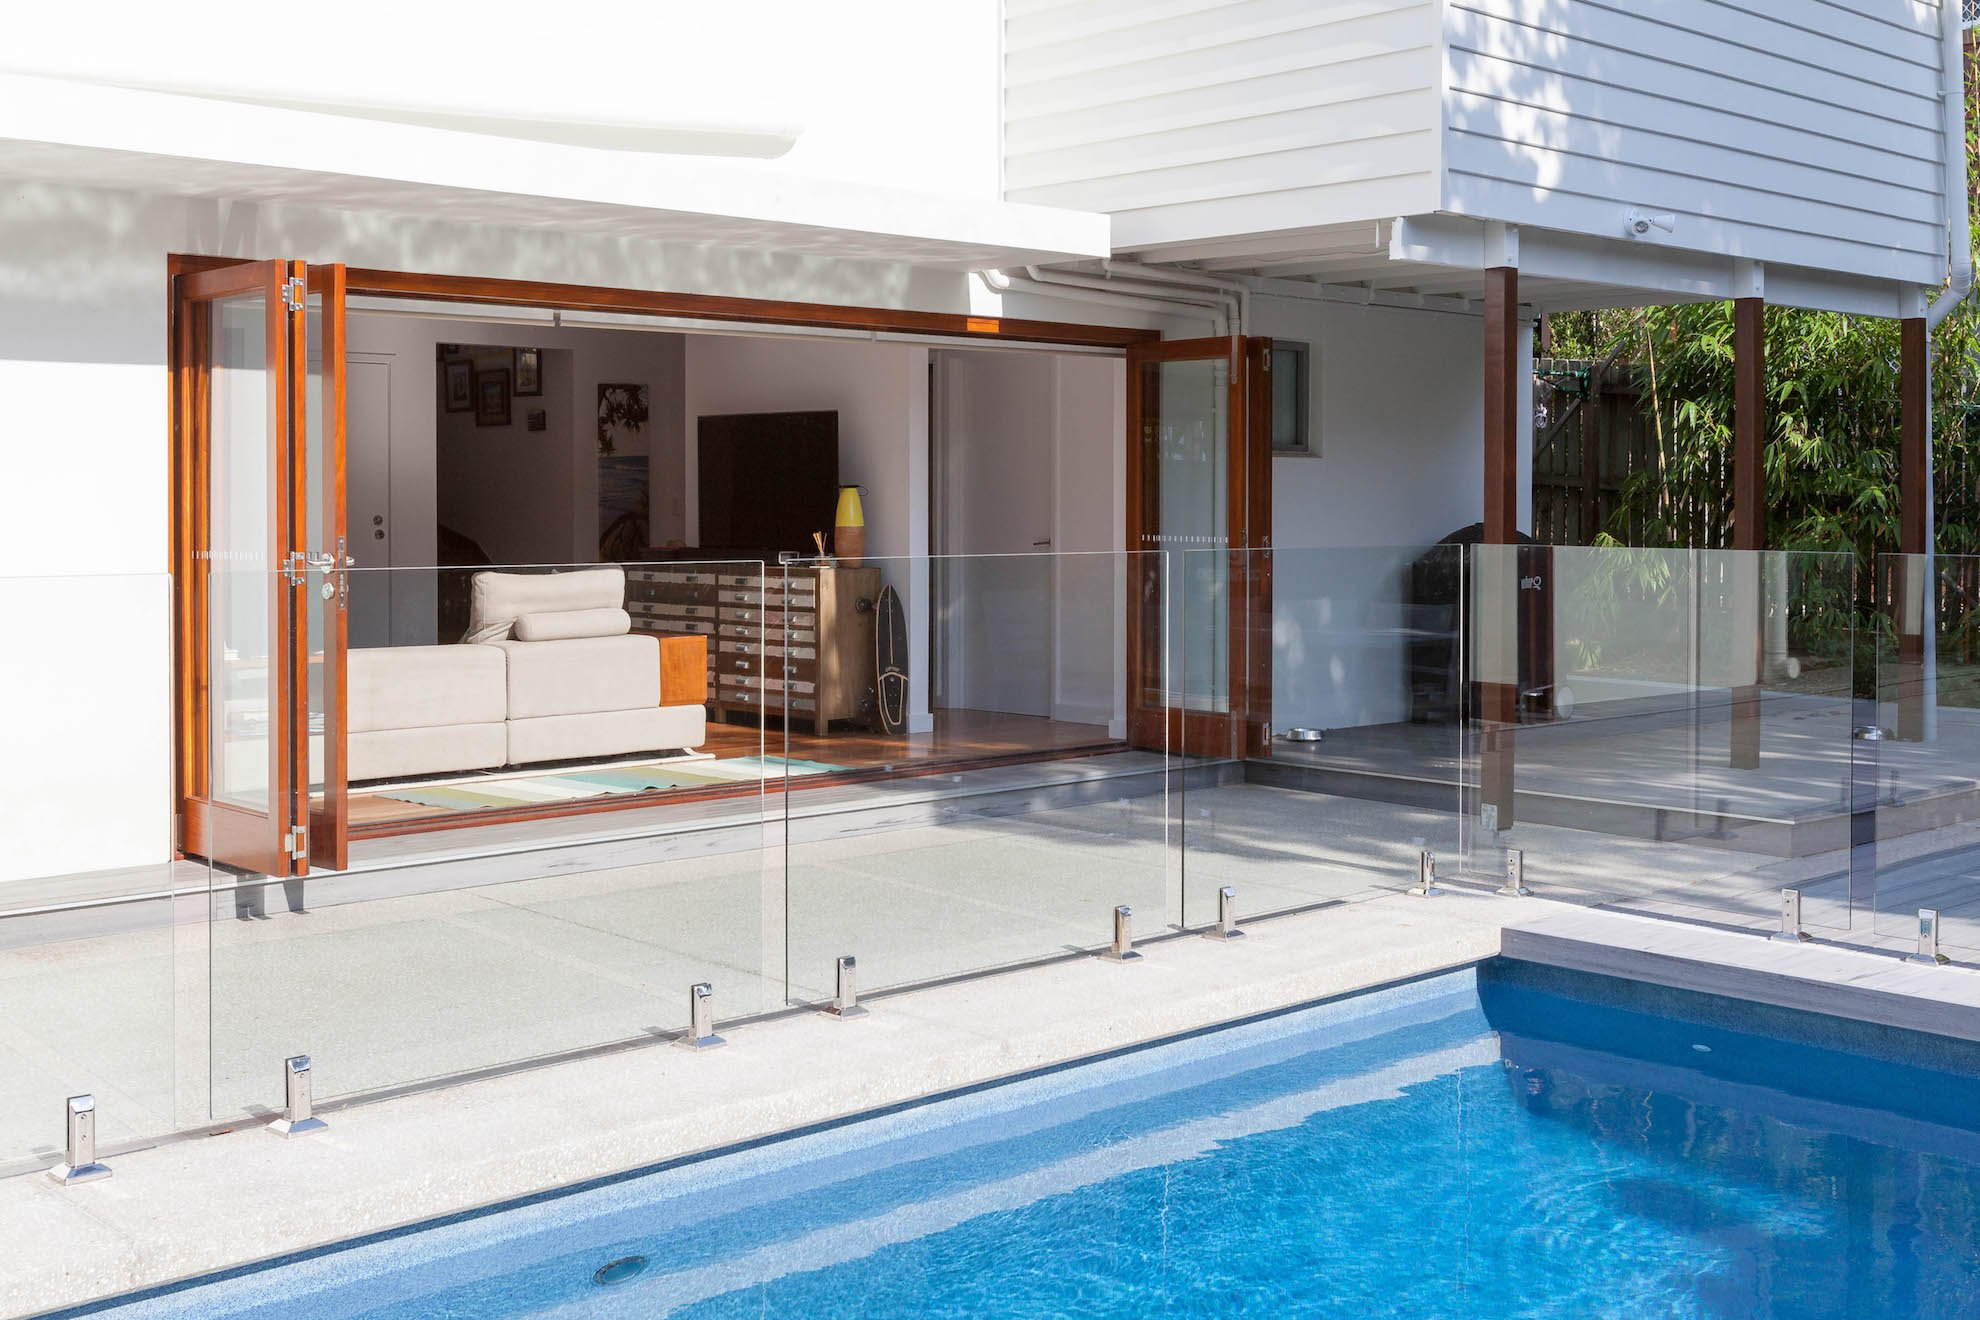 Oriole Avenue project by mdesign, a building design practice that operates on the Sunshine Coast.